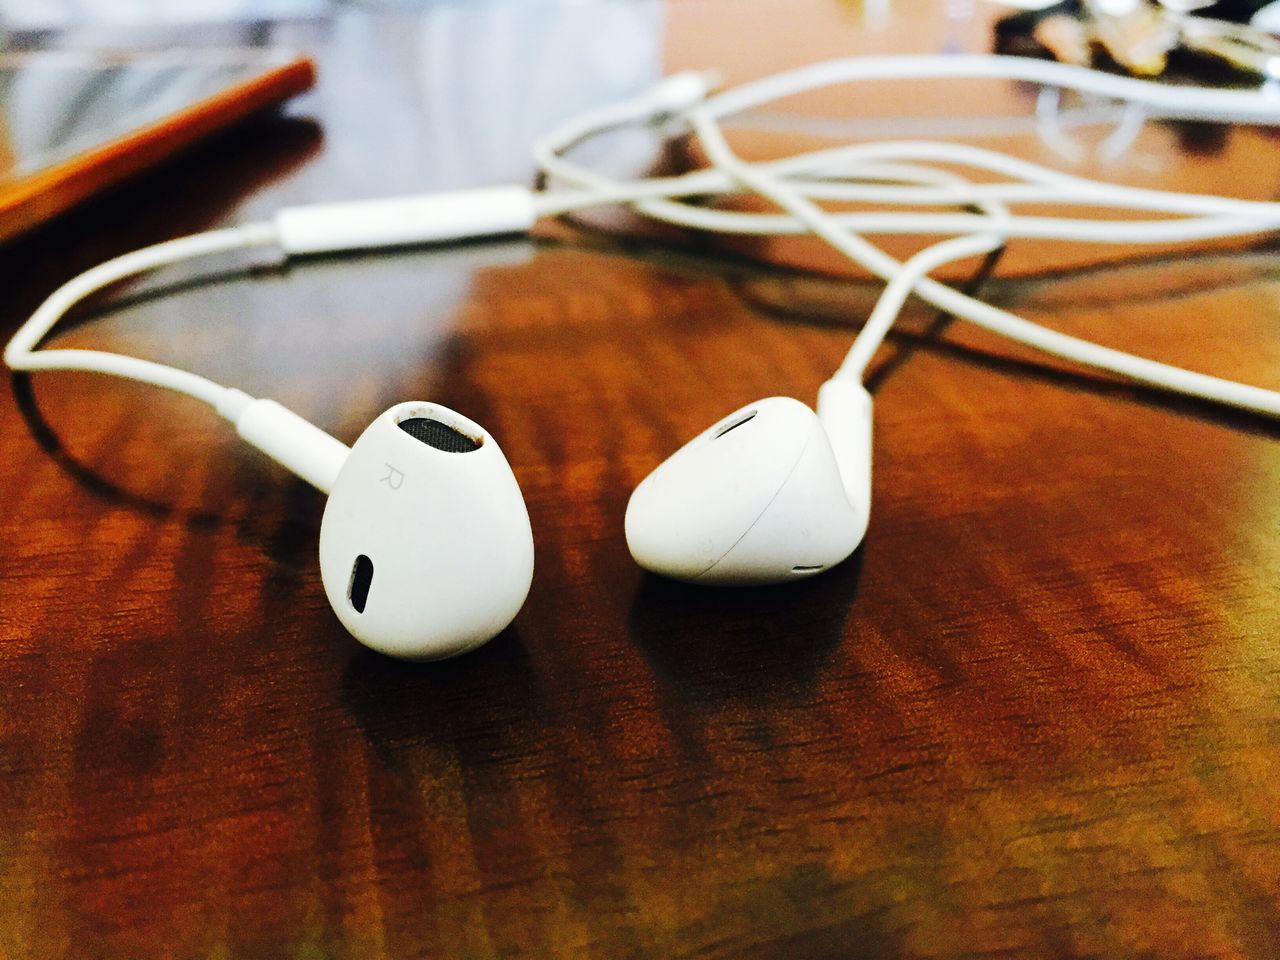 Table Indoors  No People Close-up Day Earpods Musiclover Musical Instrument Wallpaper Tune Songs